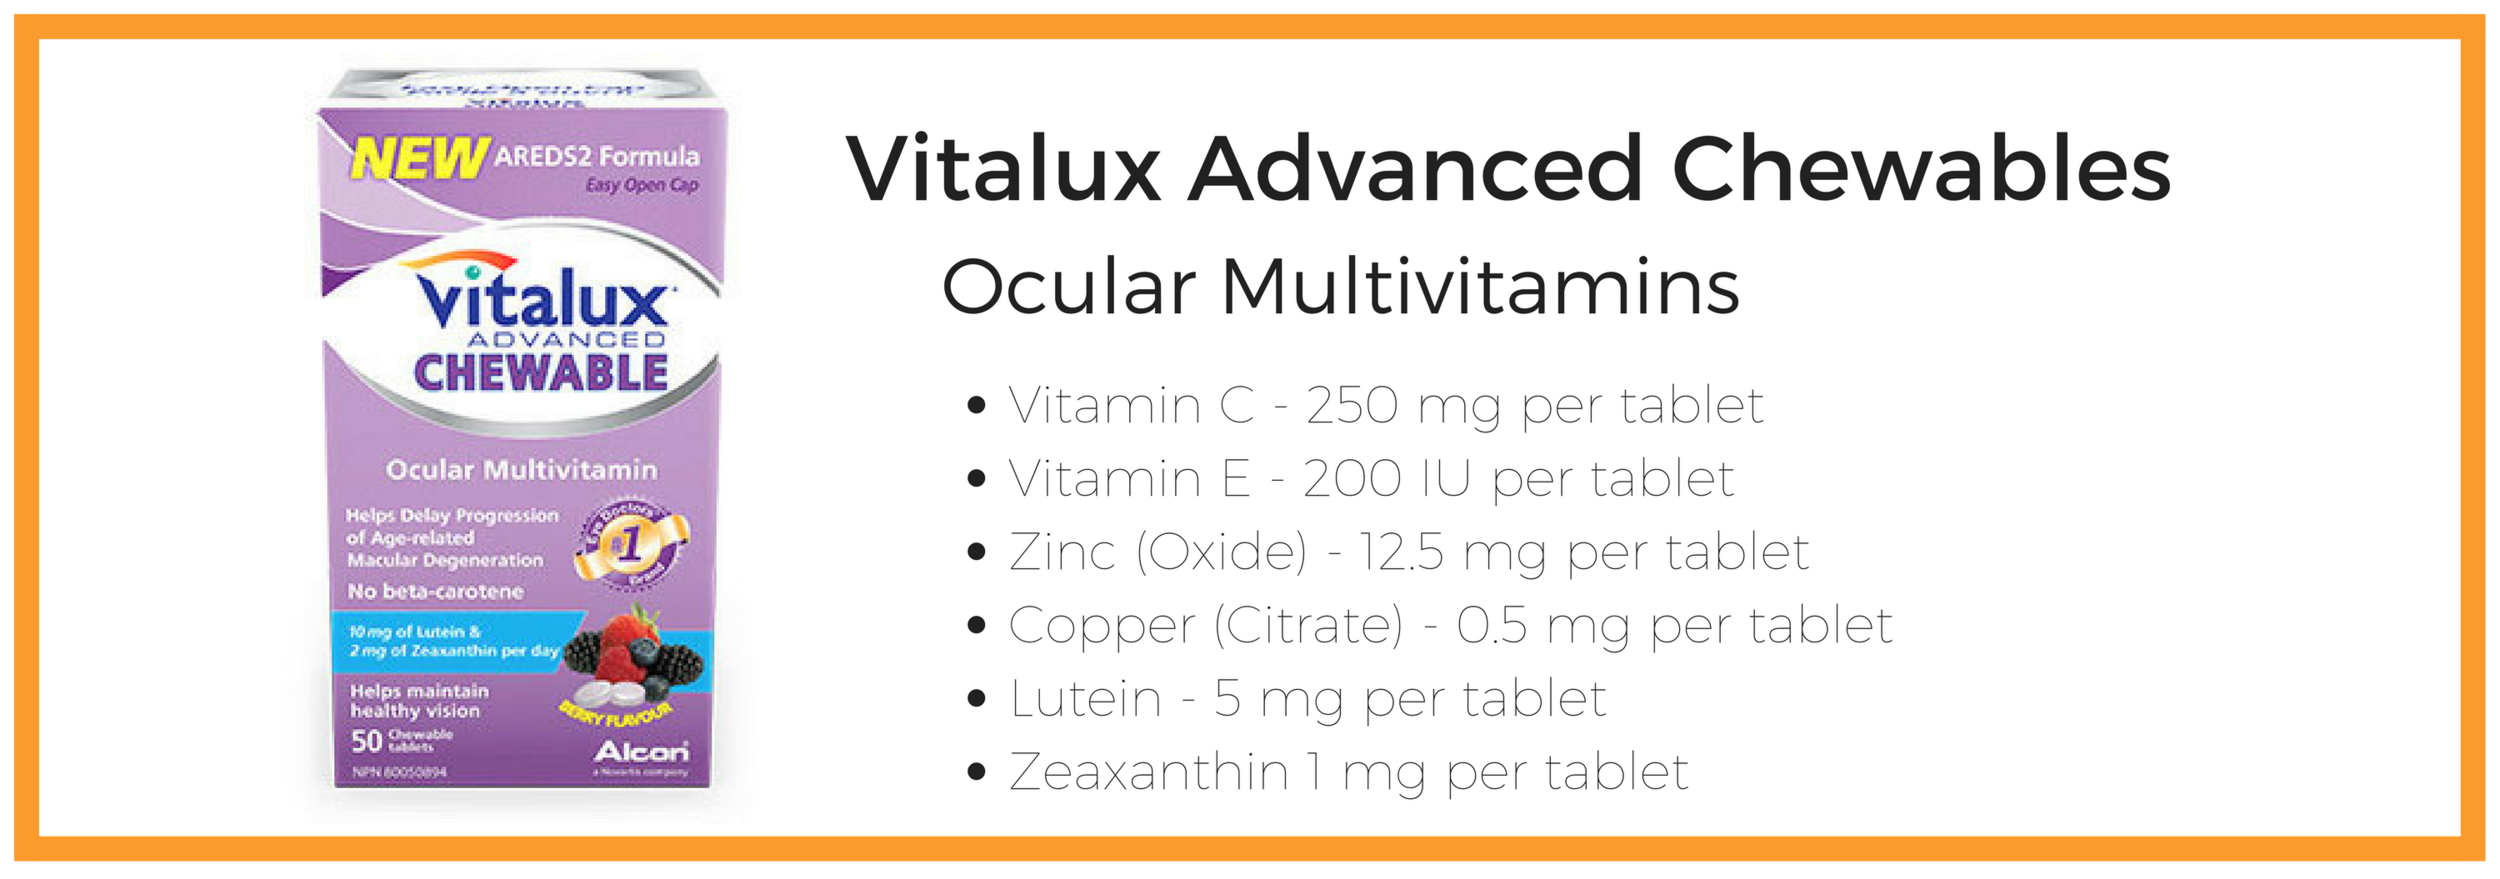 Vitalux Advanced Chewables  Multi-Box Discount available:  - 1 Box: $18.00  +GST  - 3 Box: $45.00  +GST  (save $1 per box) - 7 Box: $101.50  +GST  (Save $1.50 Per box)   Recommended Dosage:  2 Tablets per day with a meal containing oil or fat to aid in absorption, or as directed by your eye health provider.  Please talk to your doctor about whether Vitalux Advanced chewables are right for you.